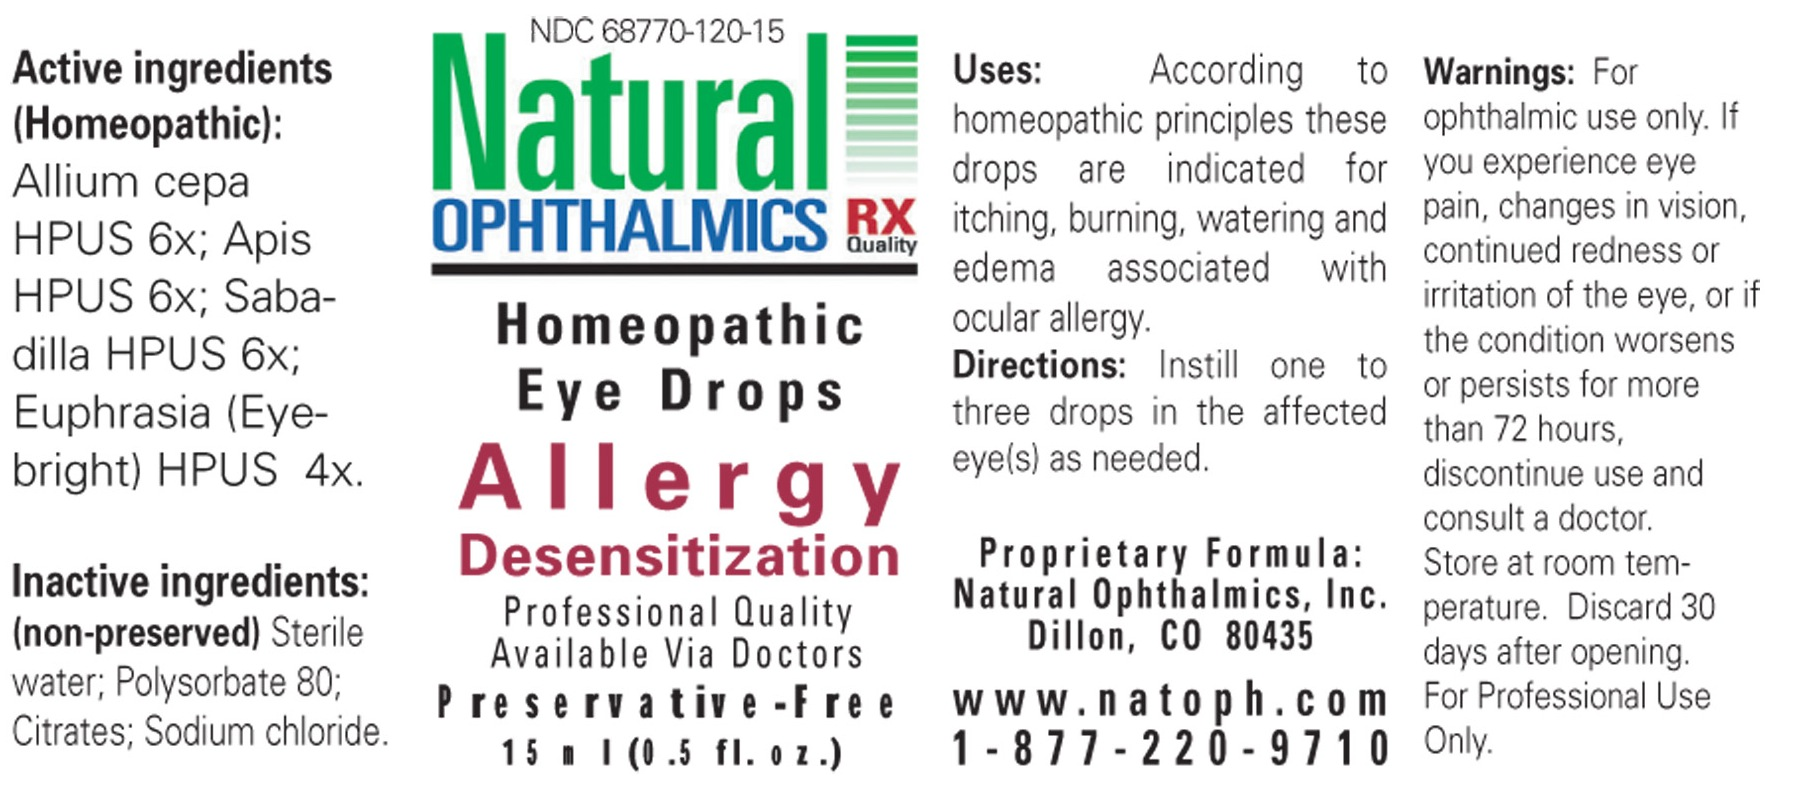 Allergy Desensitization (Onion, Apis Mellifera, Schoenocaulon Officinale Seed, Euphrasia Stricta) Liquid [Natural Ophthalmics, Inc]